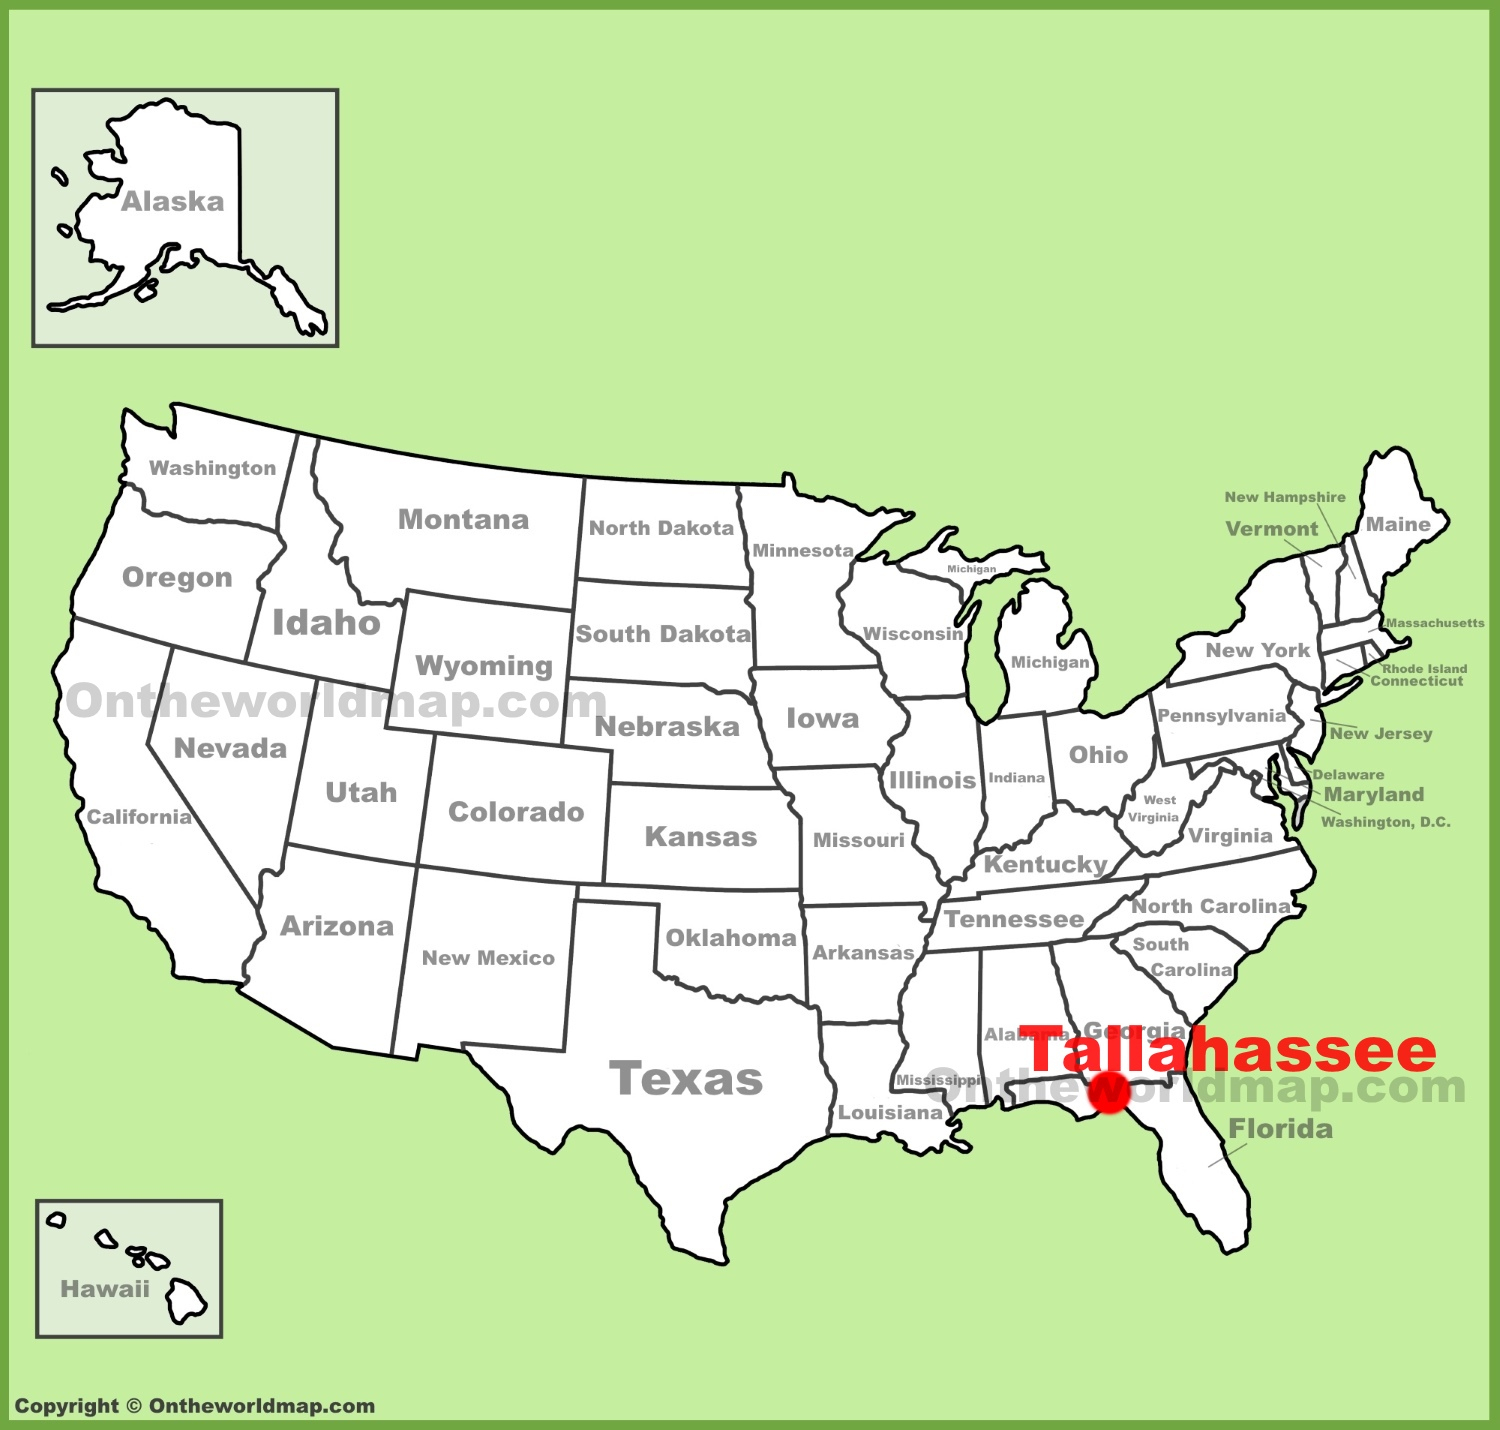 Tallahassee Location On The U.s. Map - Tallahassee On The Map Of Florida